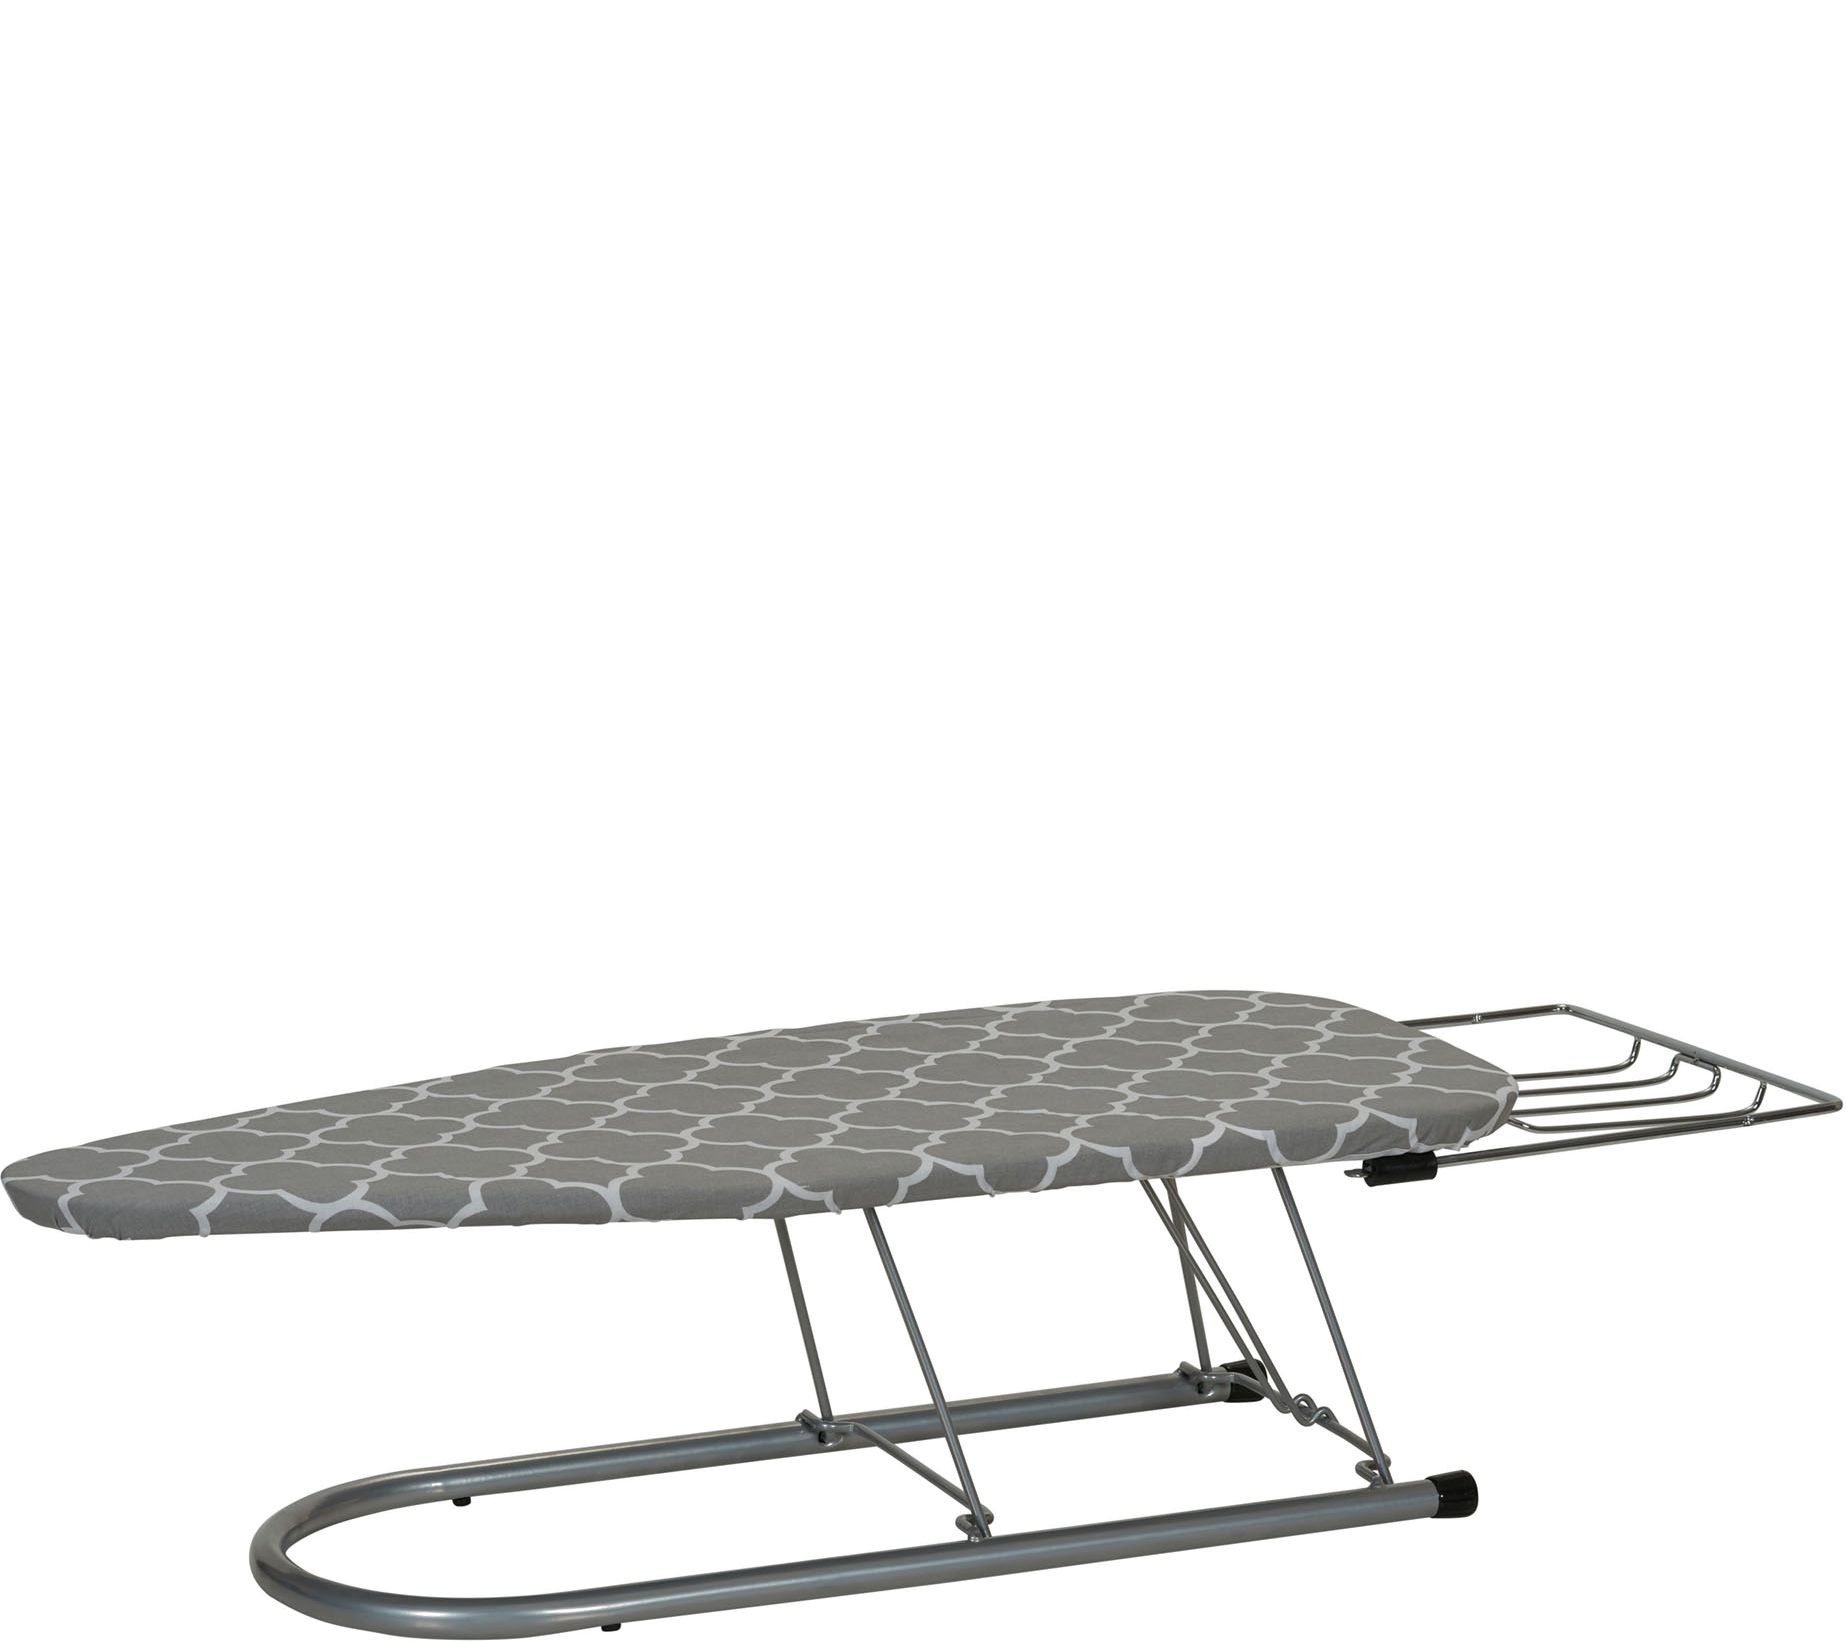 Household Essentials Steel Tabletop Ironing Board U2014 QVC.com